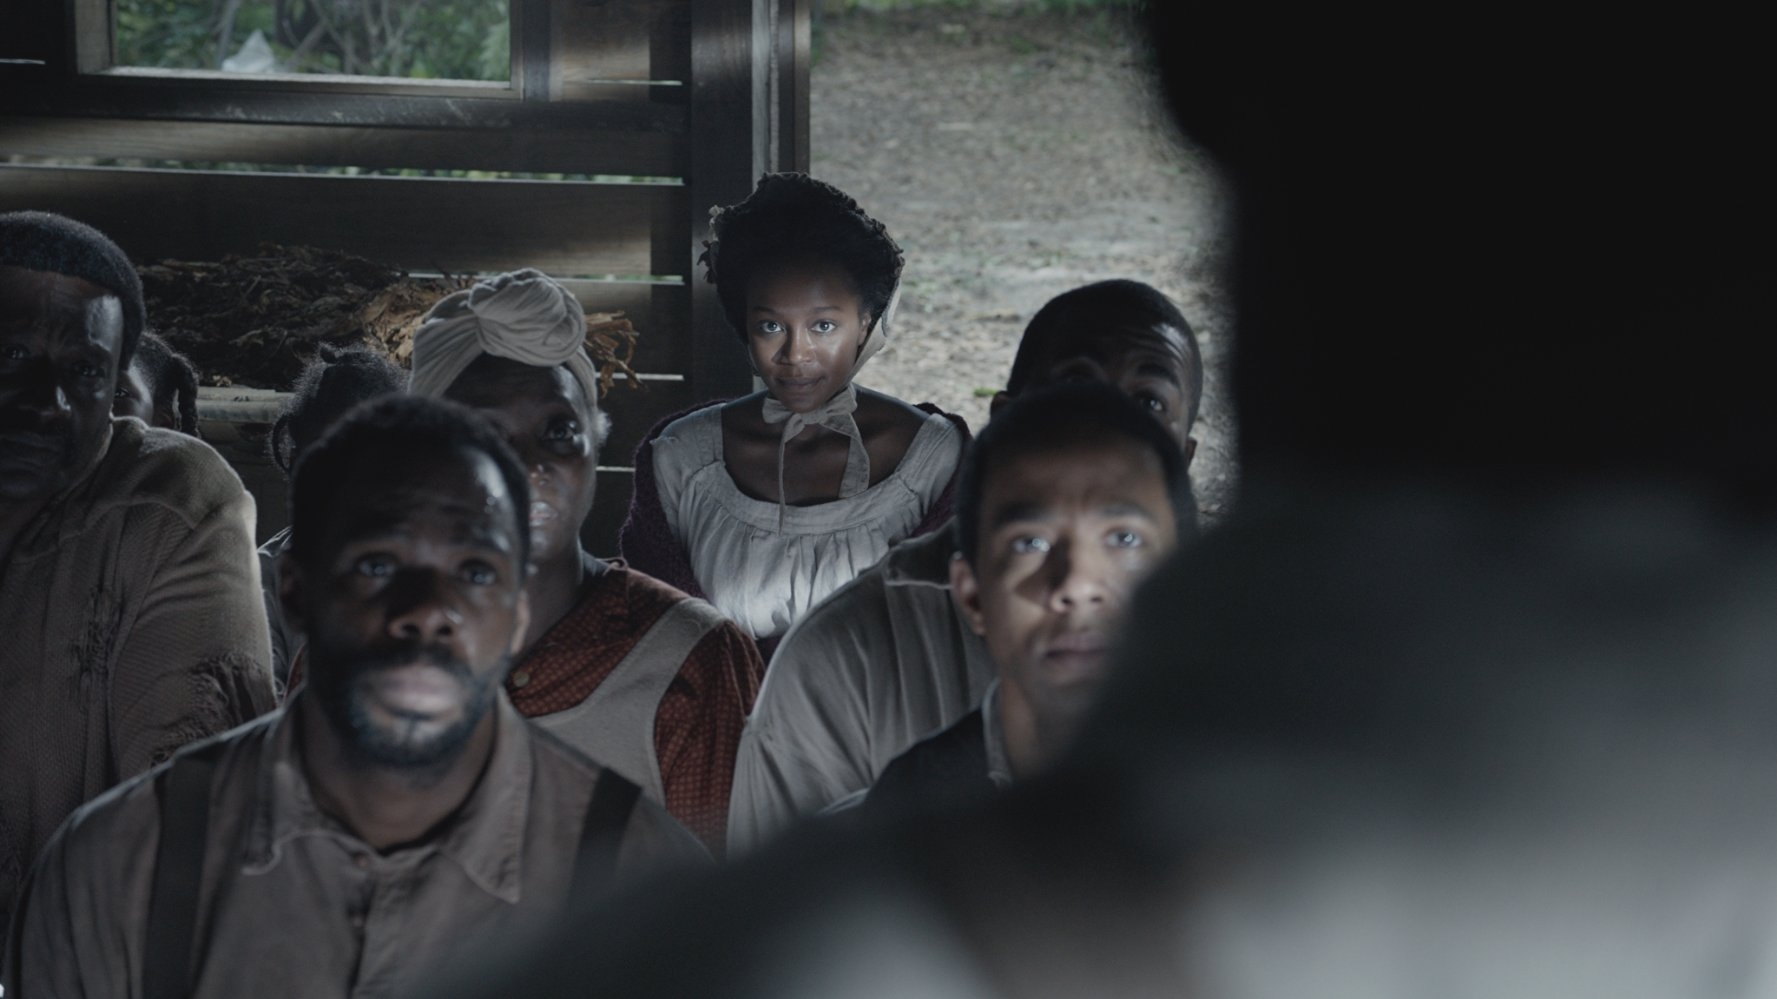 More 'The Birth of a Nation' Stills